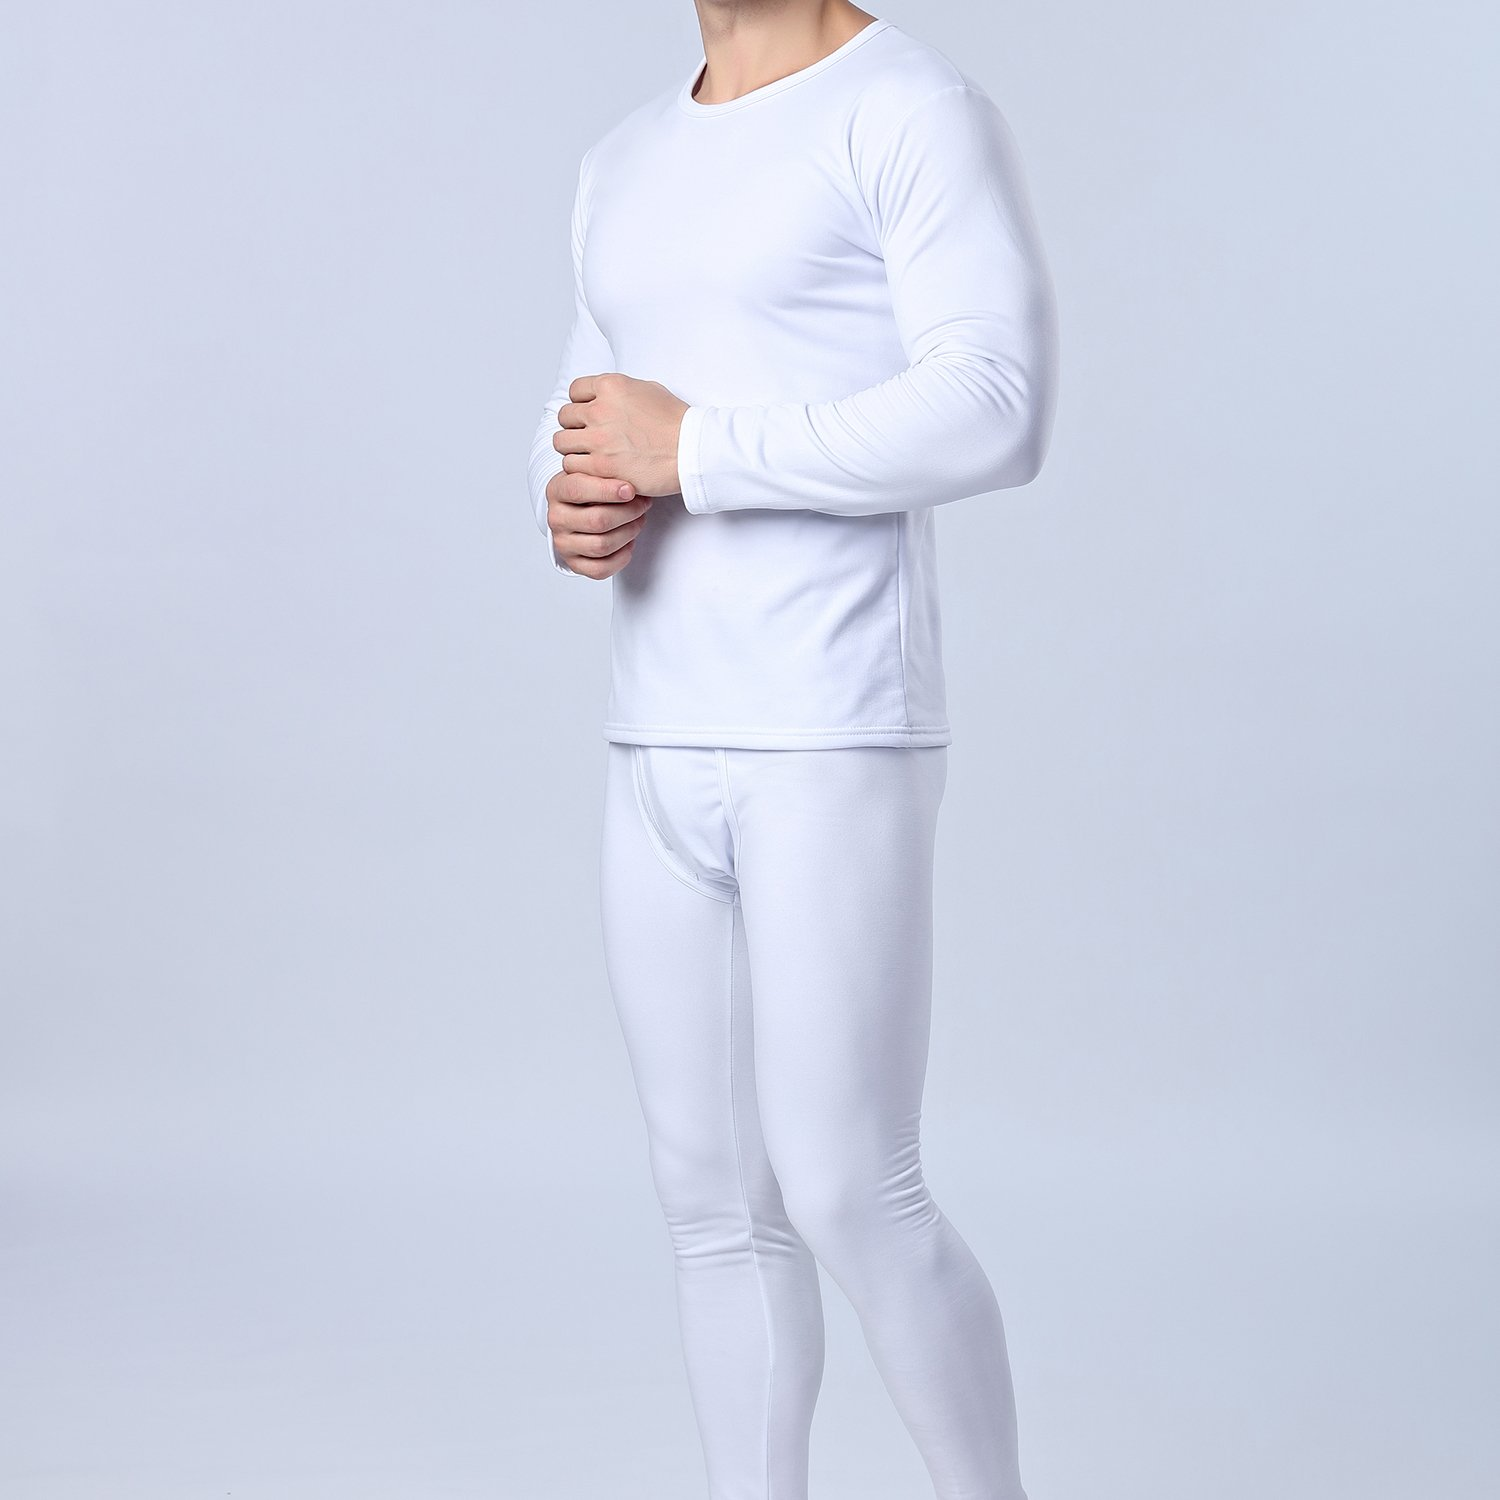 Men/'s Thermal Underwear Set Fluff Lining Long Sleeve Top /& Bottom Long Johns Pants for Winter Thermals Travel Camping Ski